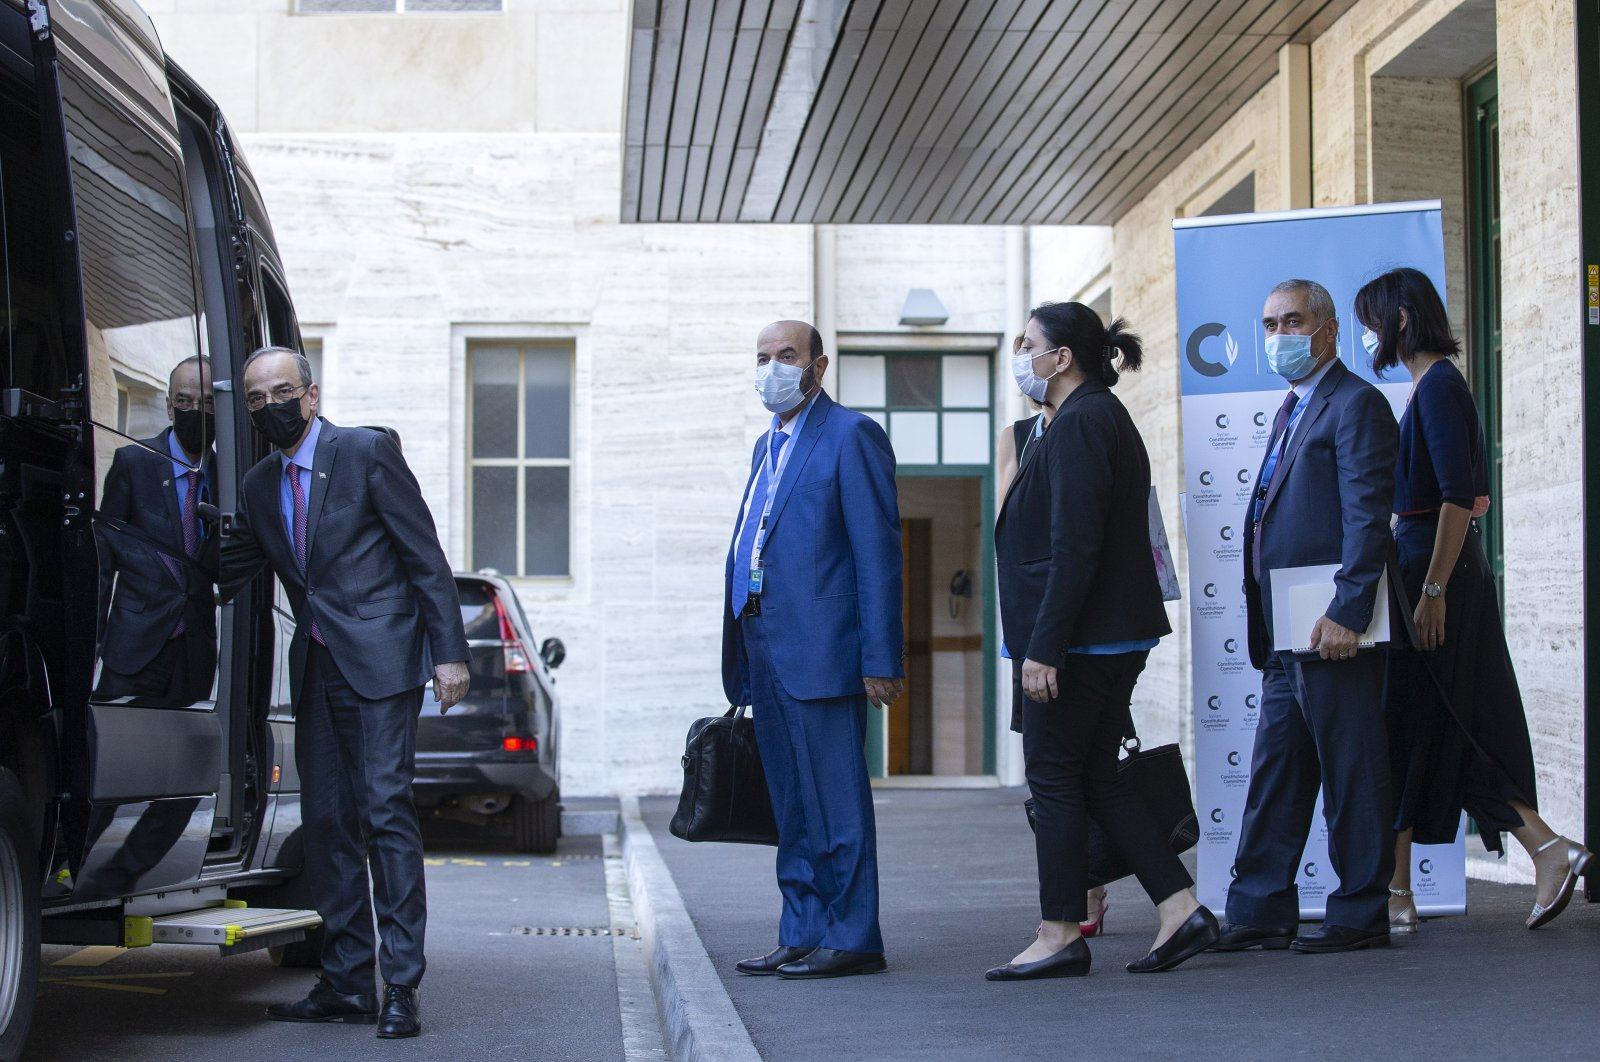 Syrian Constitutional Committee Co-Chair Hadi al-Bahra (L) leaves following the announcement of the suspension of the conference due to cases of COVID-19, at the European headquarters of the United Nations in Geneva, Switzerland, Aug. 24, 2020. (AP Photo)